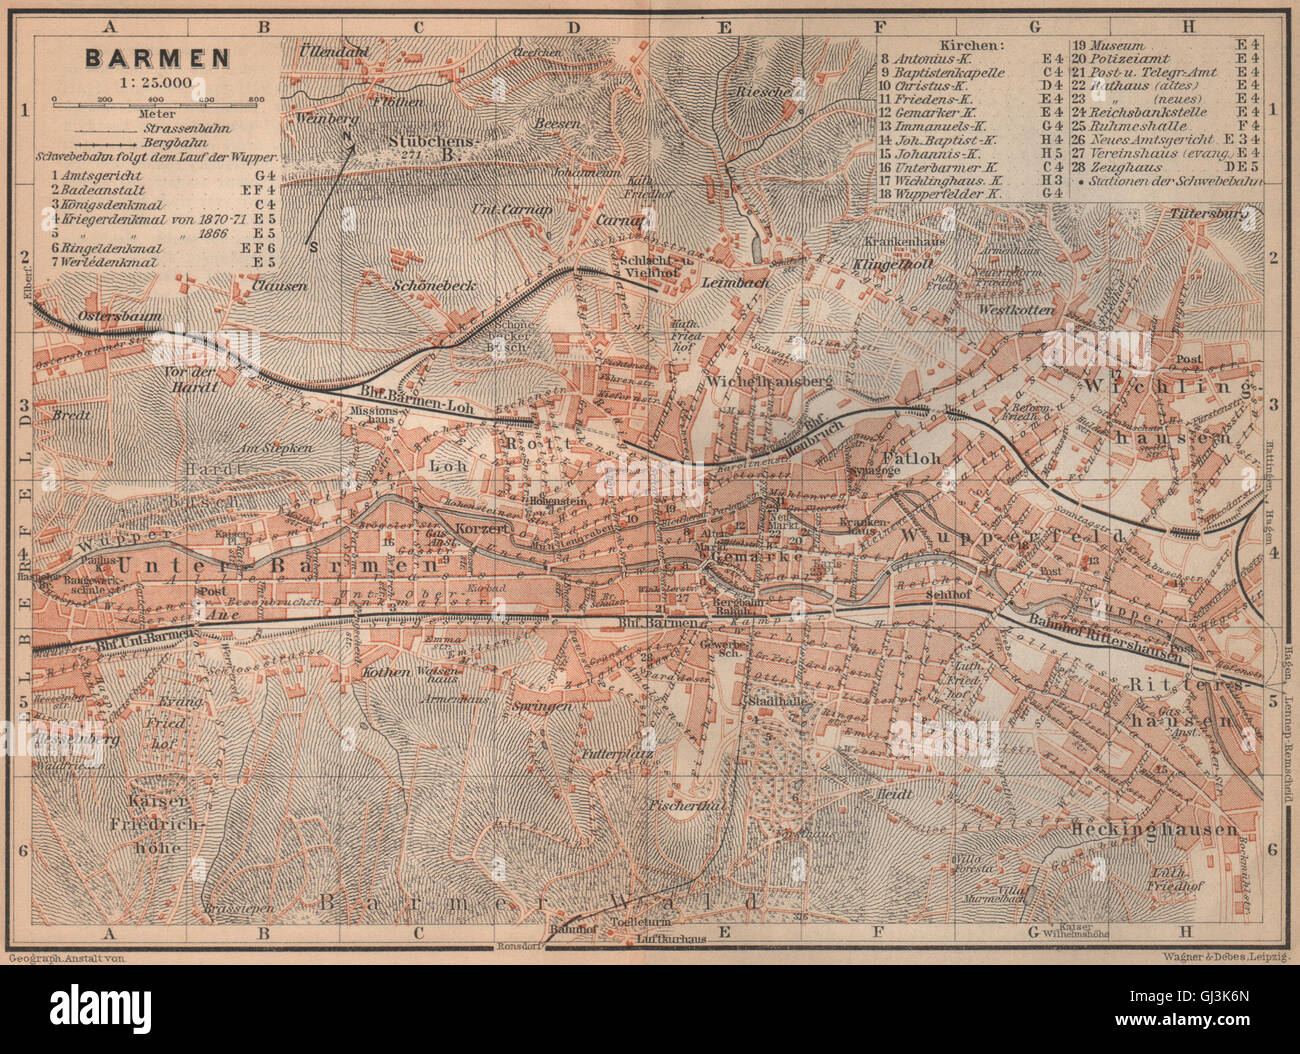 Wuppertal Karte.Barmen Wuppertal Antique Town City Stadtplan Germany Karte 1903